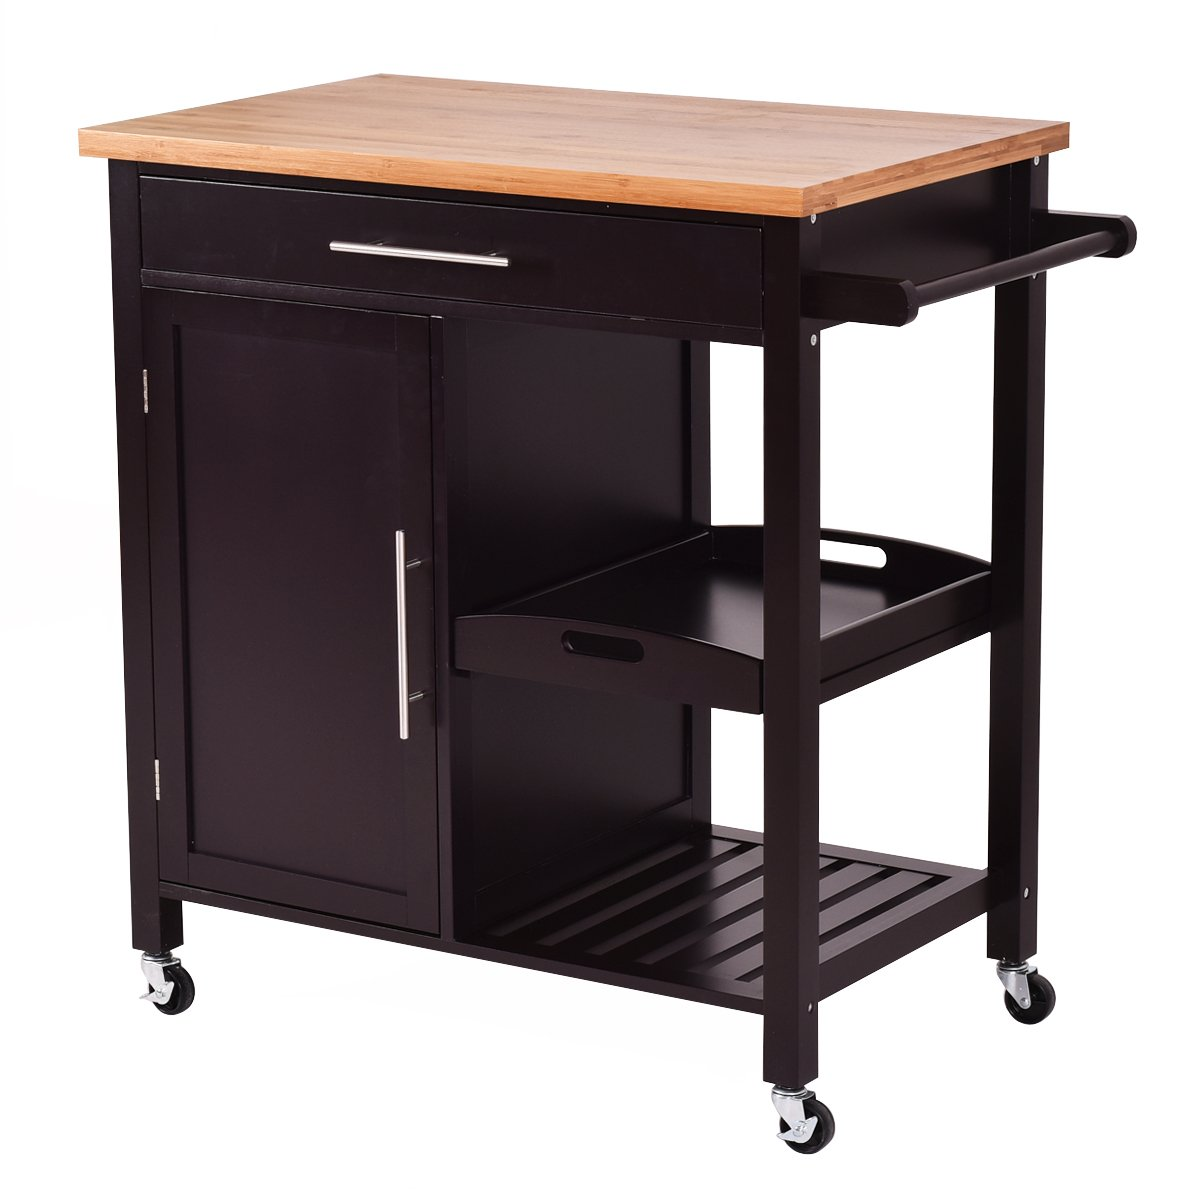 Storage Kitchen Amazoncom Kitchen Islands Carts Home Kitchen Storage Carts